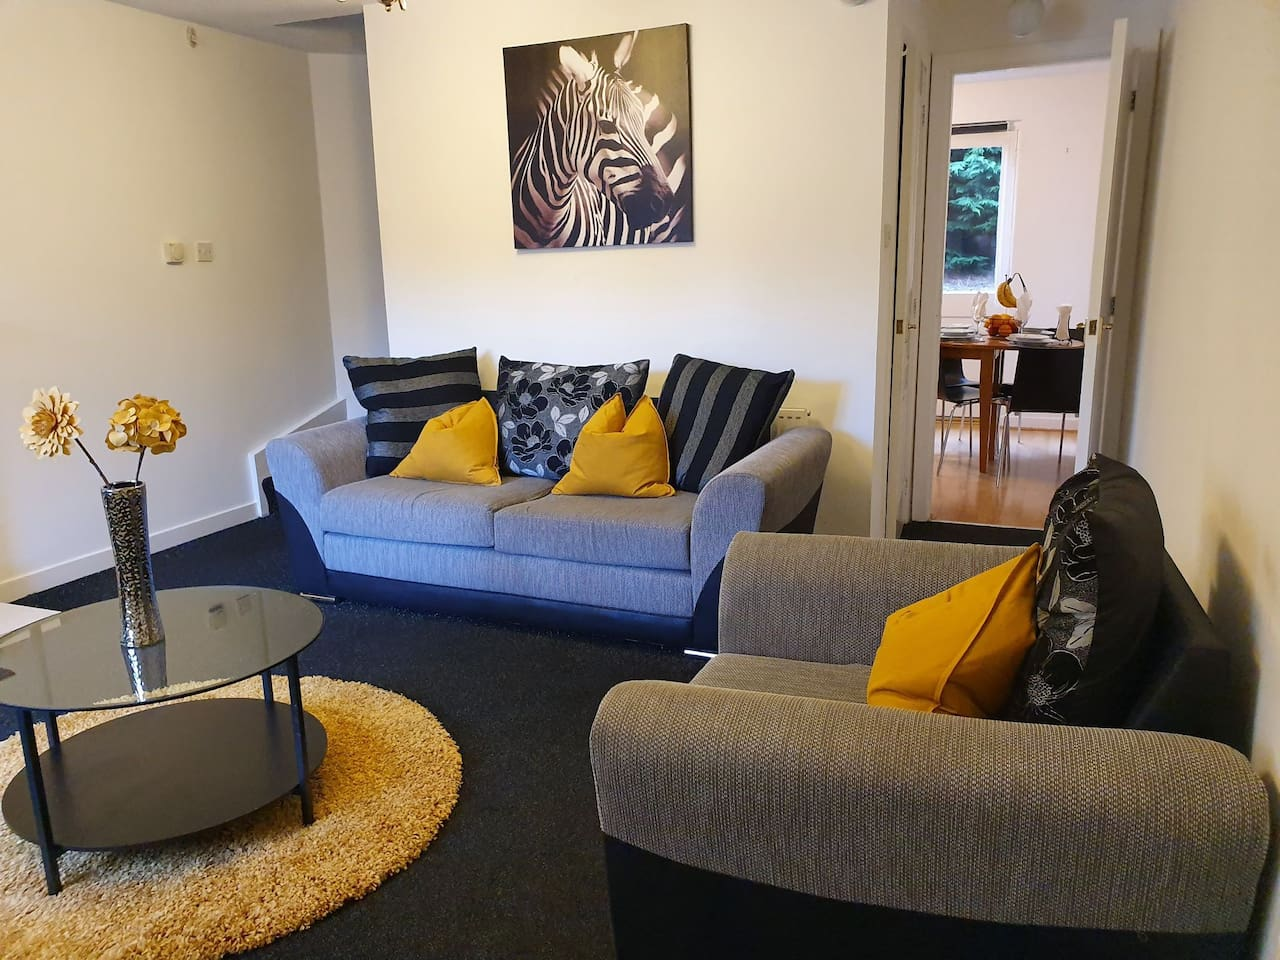 Comfortable living space with direct access to the kitchen and rear garden